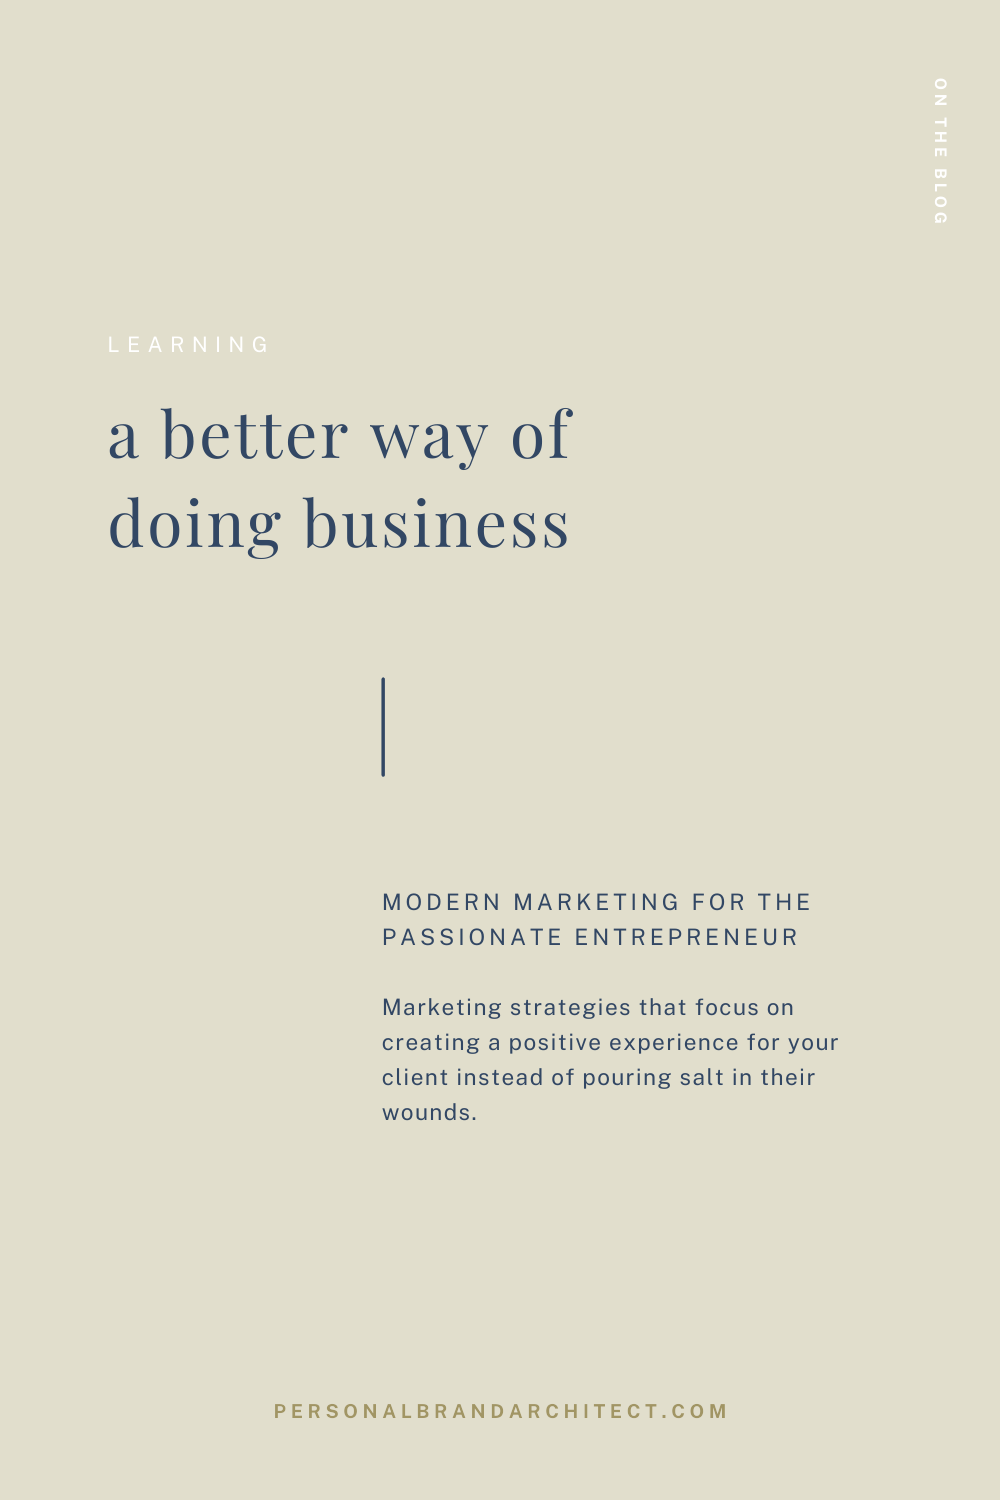 a better way of doing business